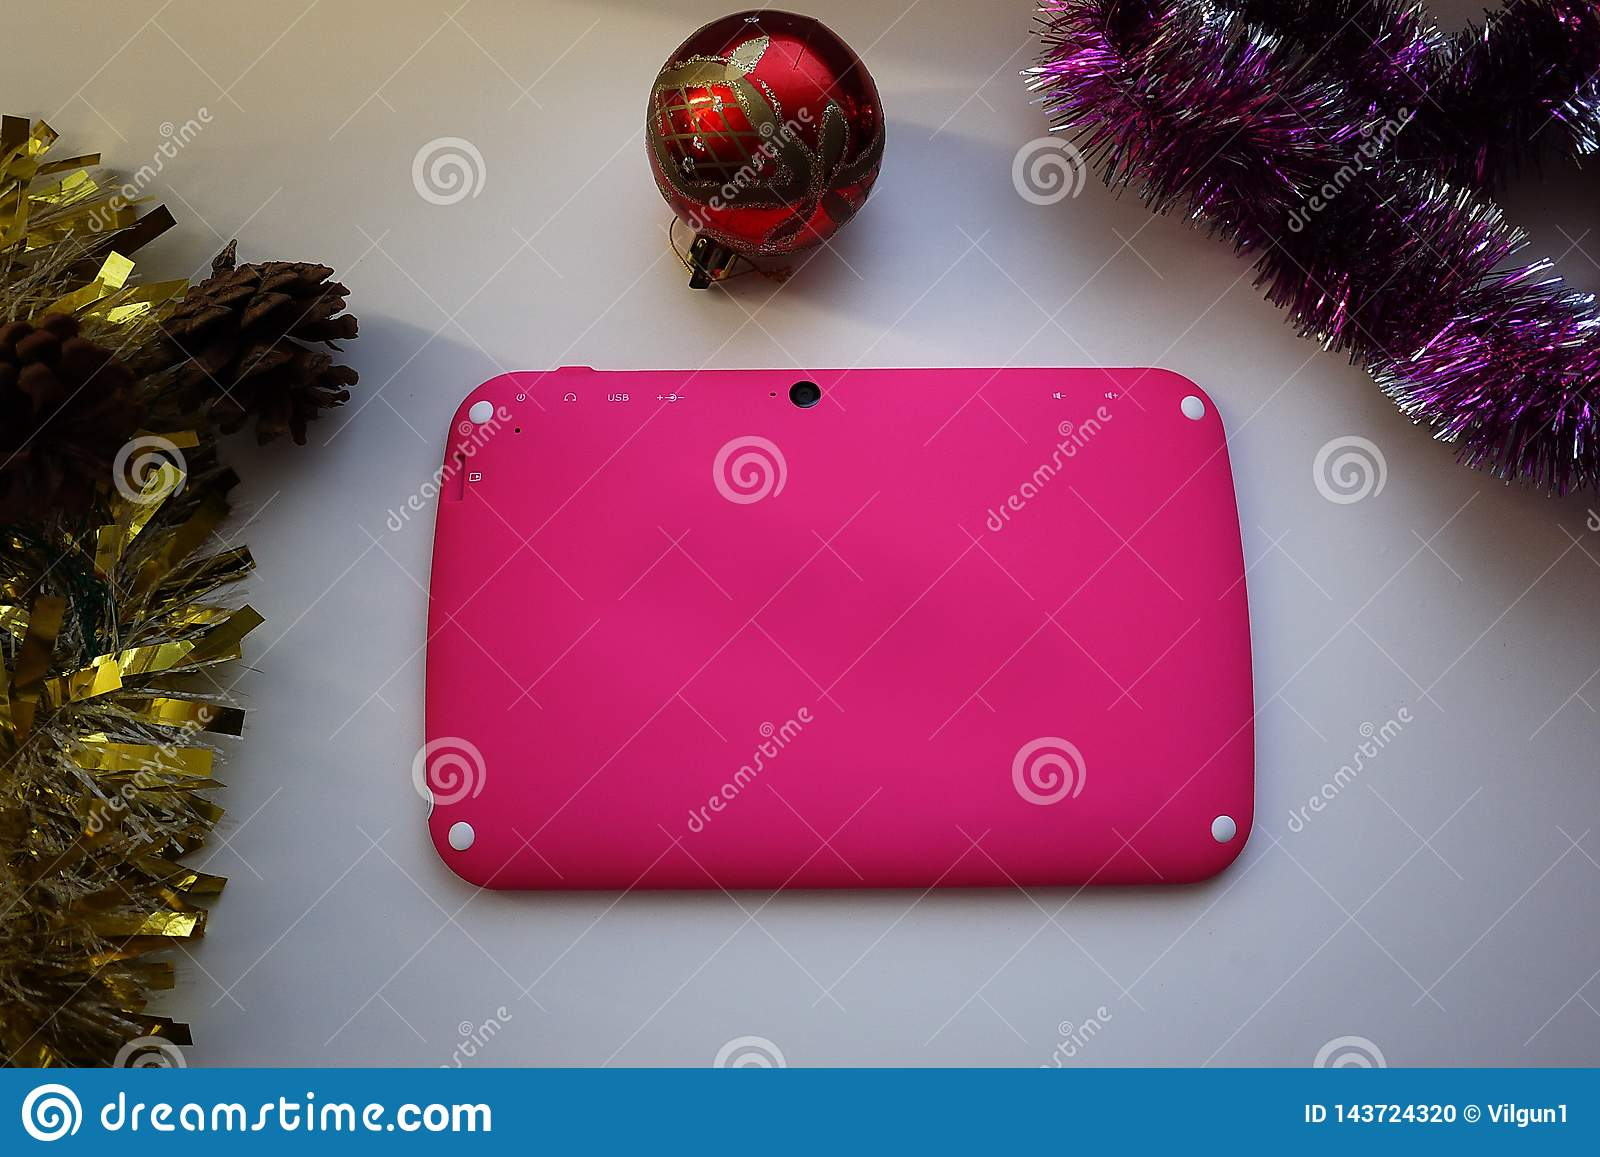 Tablet in the hands of a child. Tablet with a bright cover